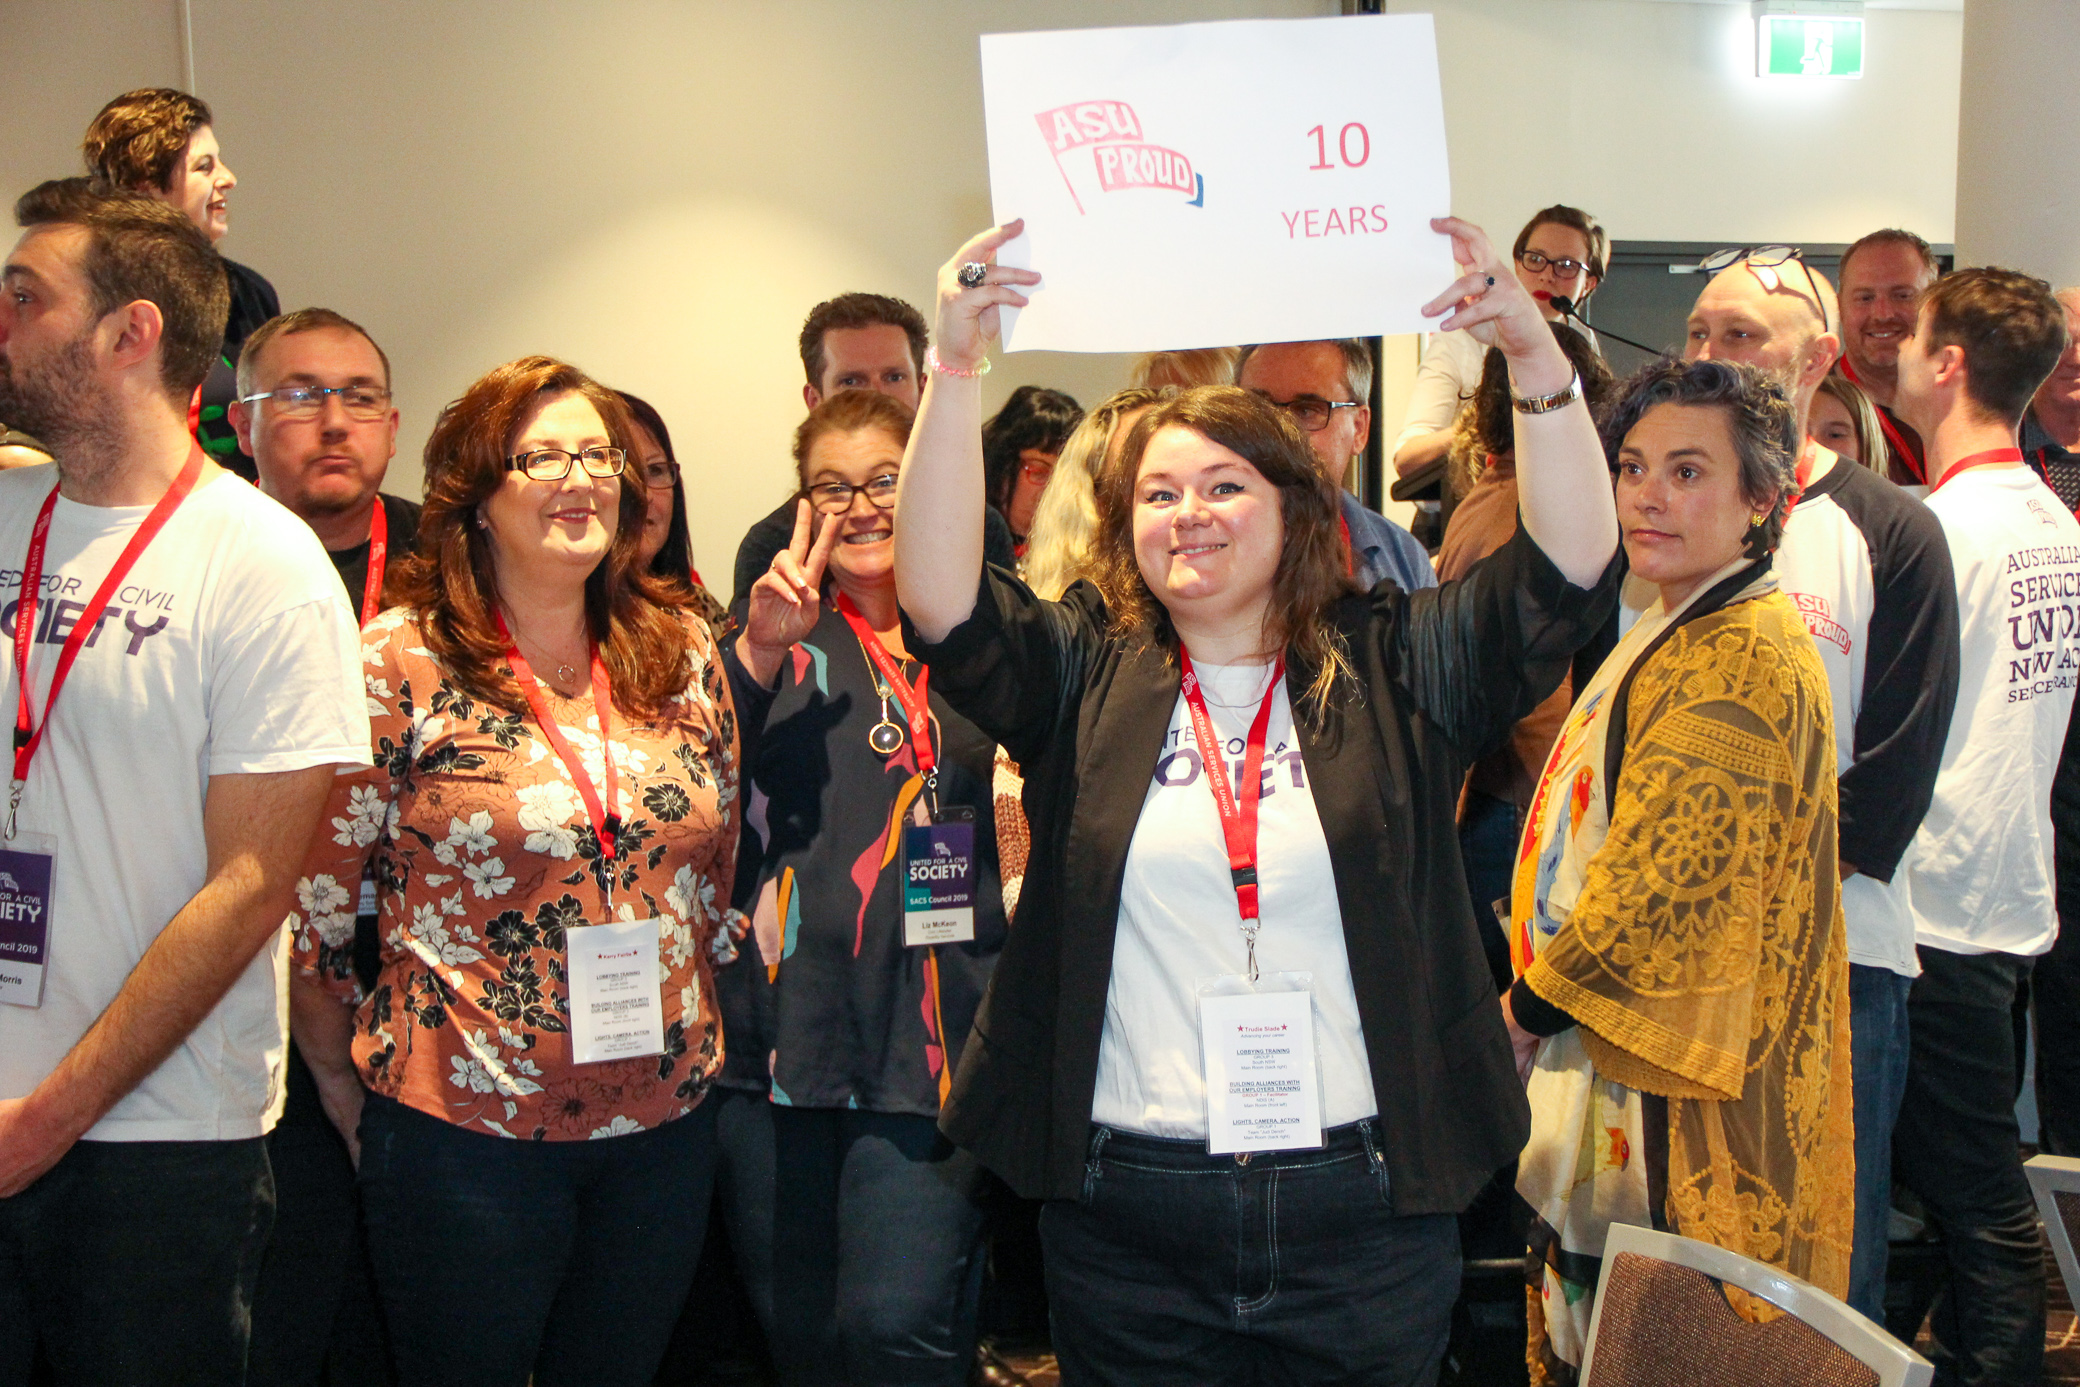 Union Members participate in activity at Community Sector Conference